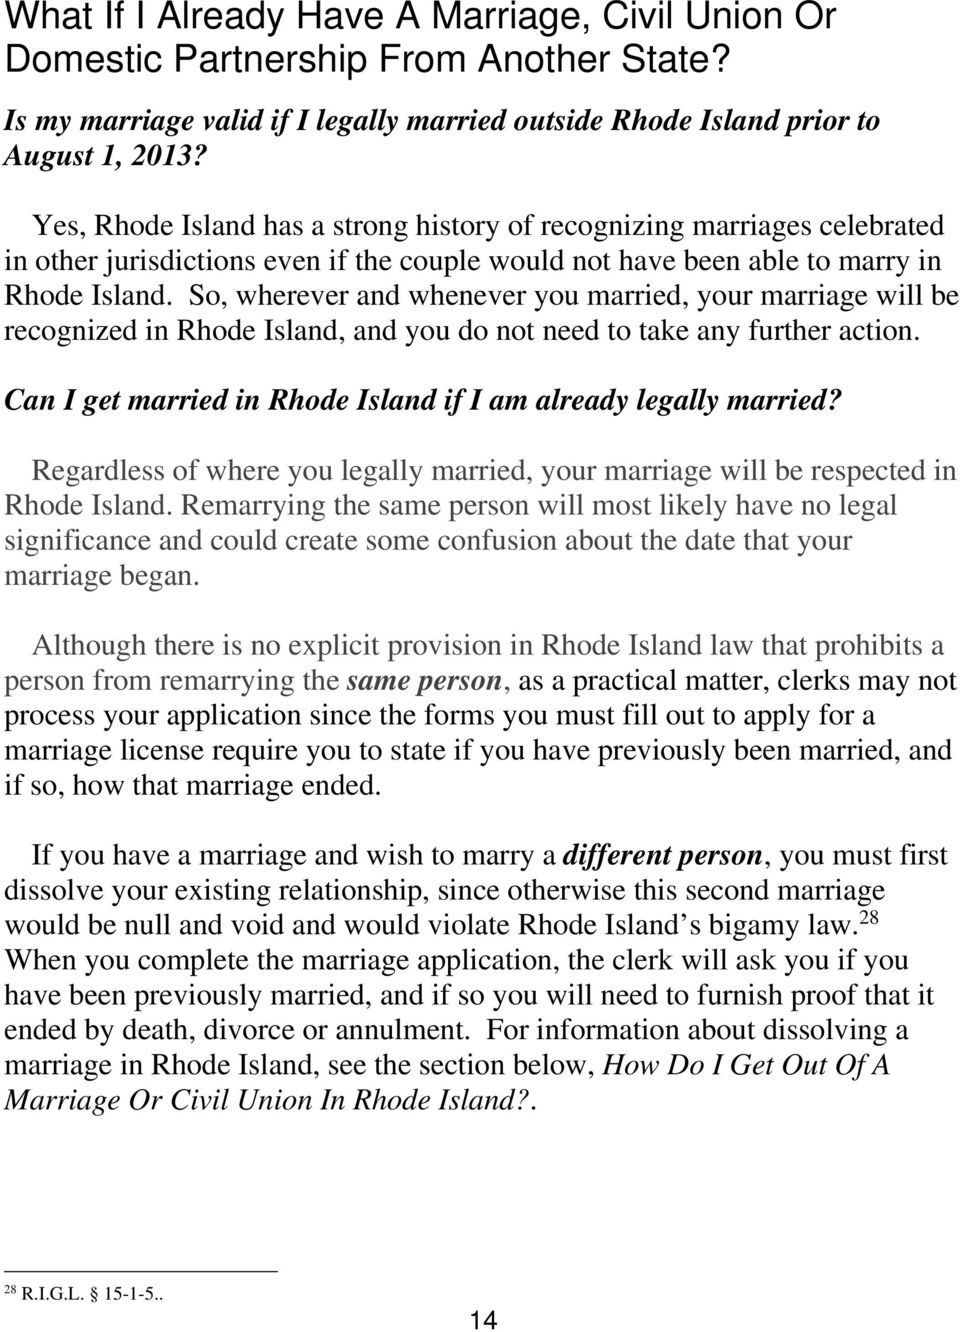 So, wherever and whenever you married, your marriage will be recognized in Rhode Island, and you do not need to take any further action.